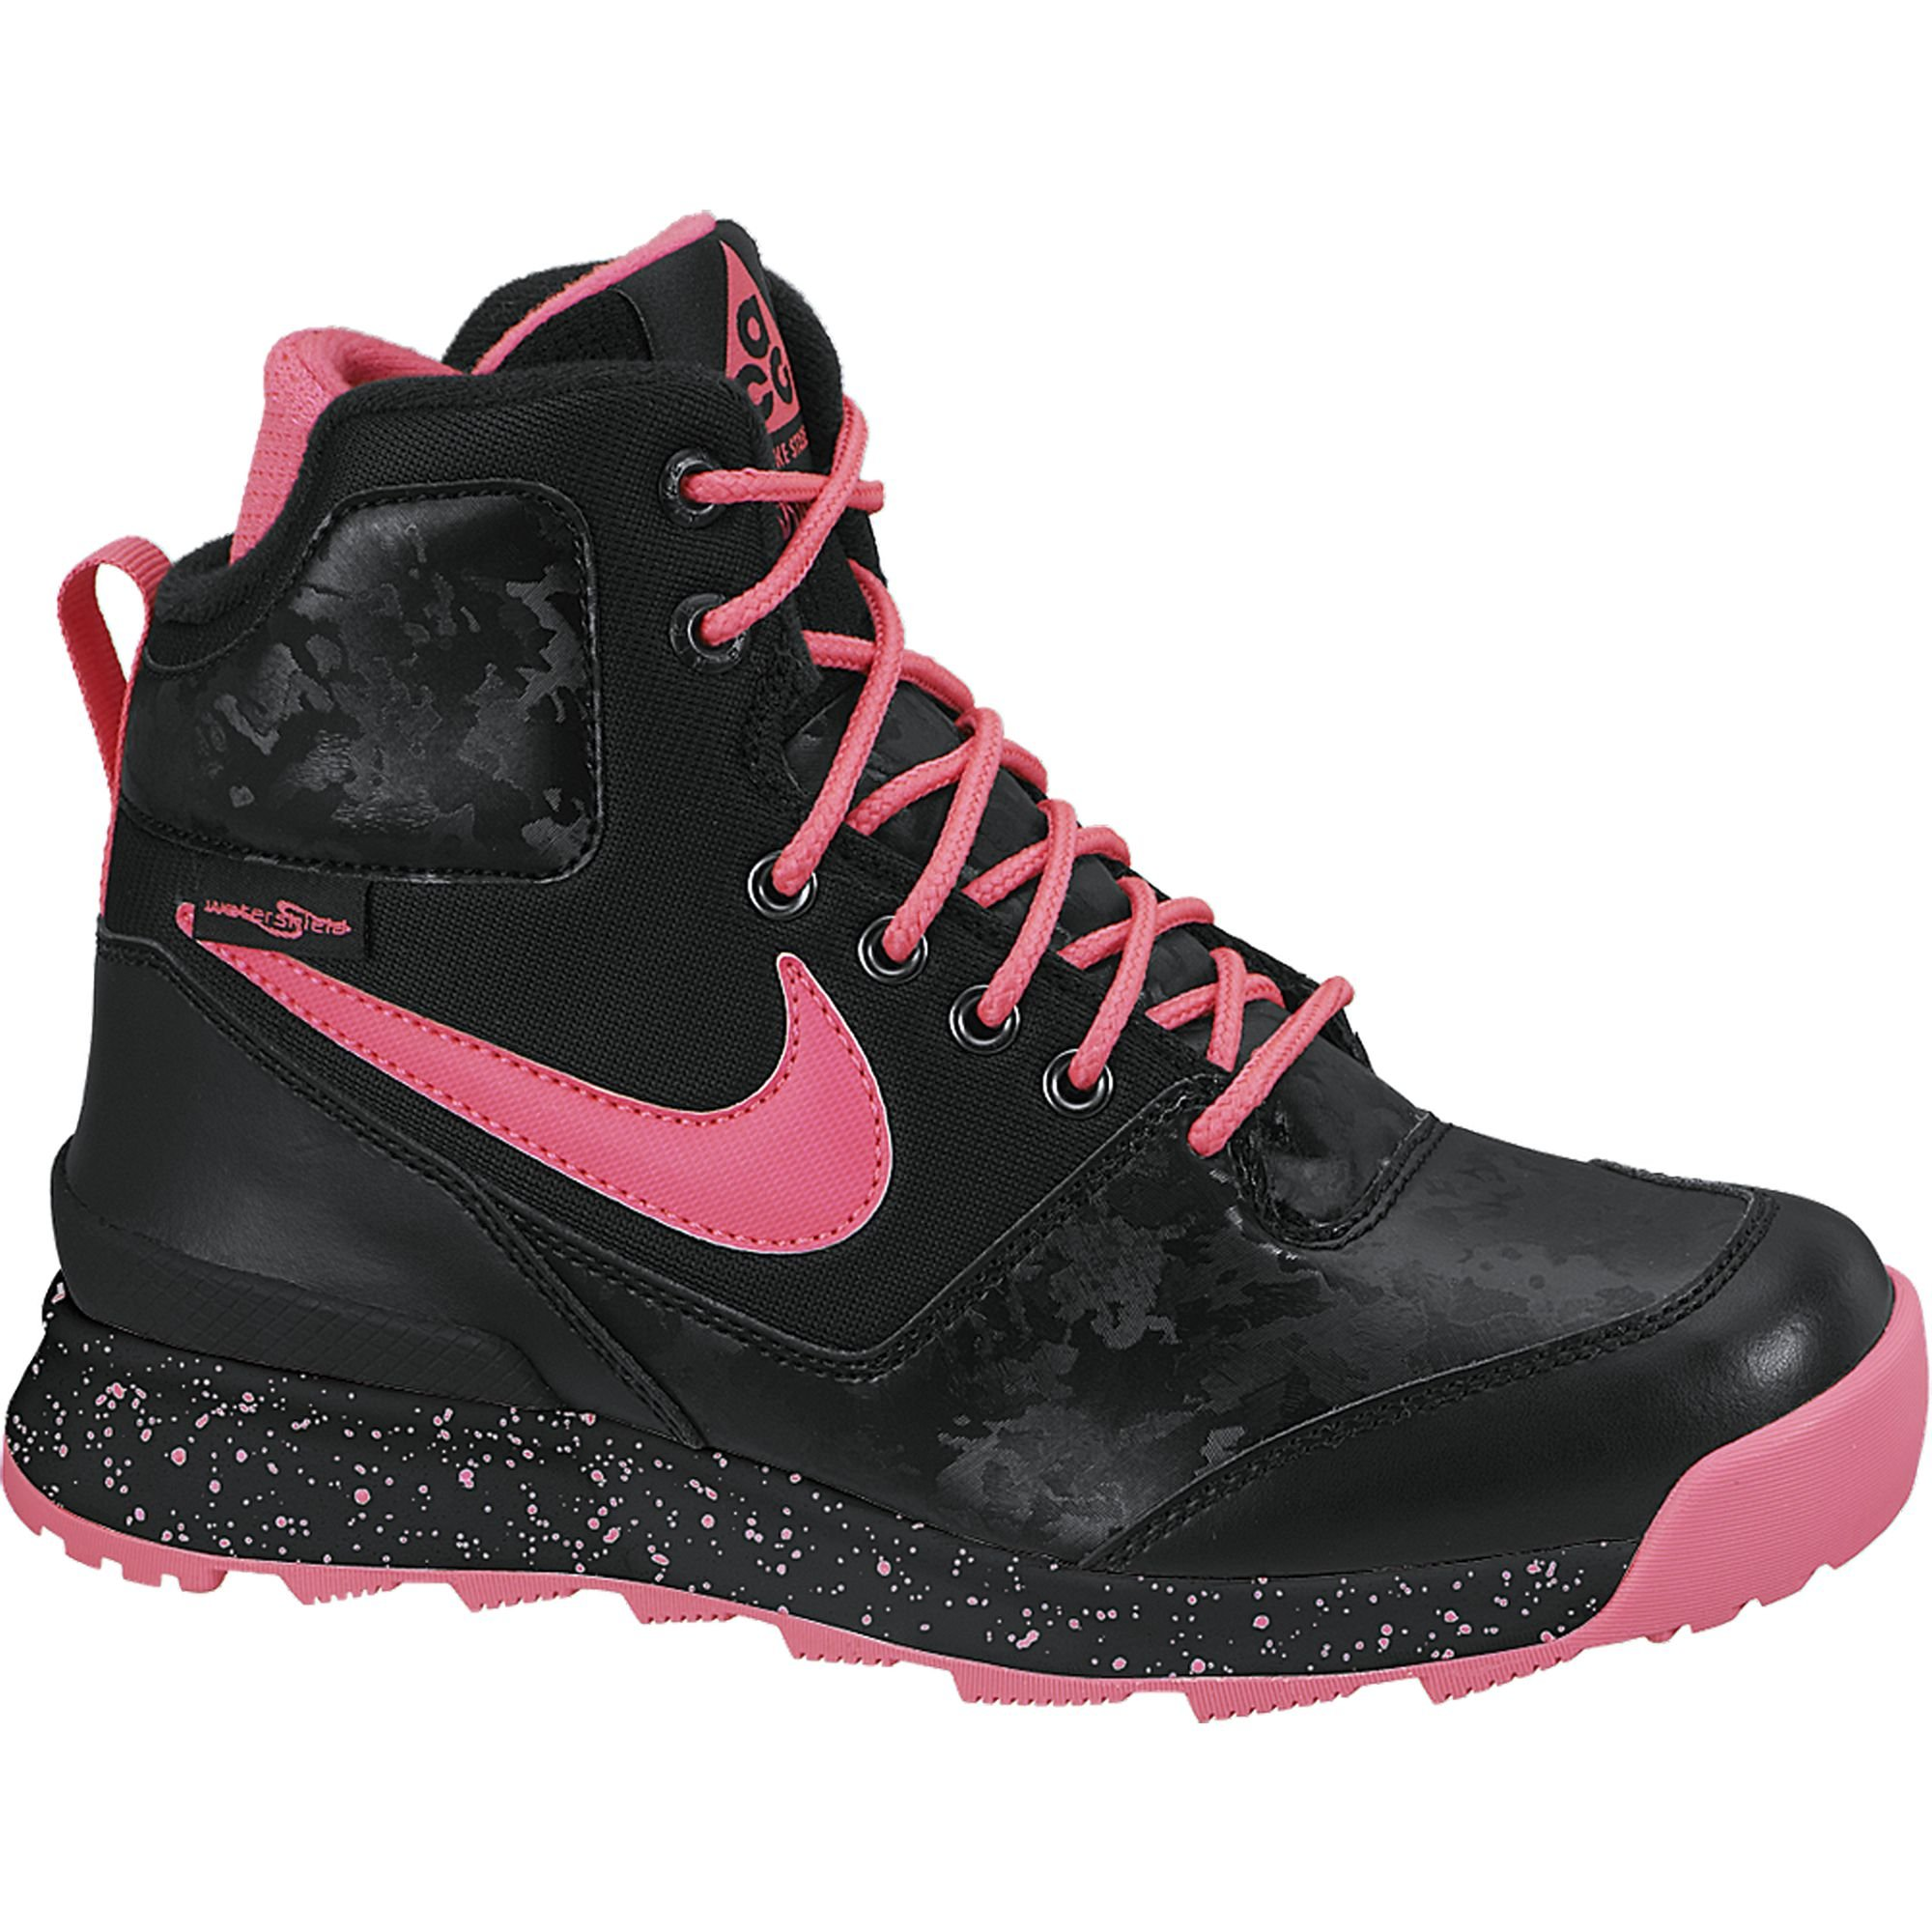 Boy's Nike Stasis ACG (GS) Boot Black/Pink Size 7 M US by NIKE